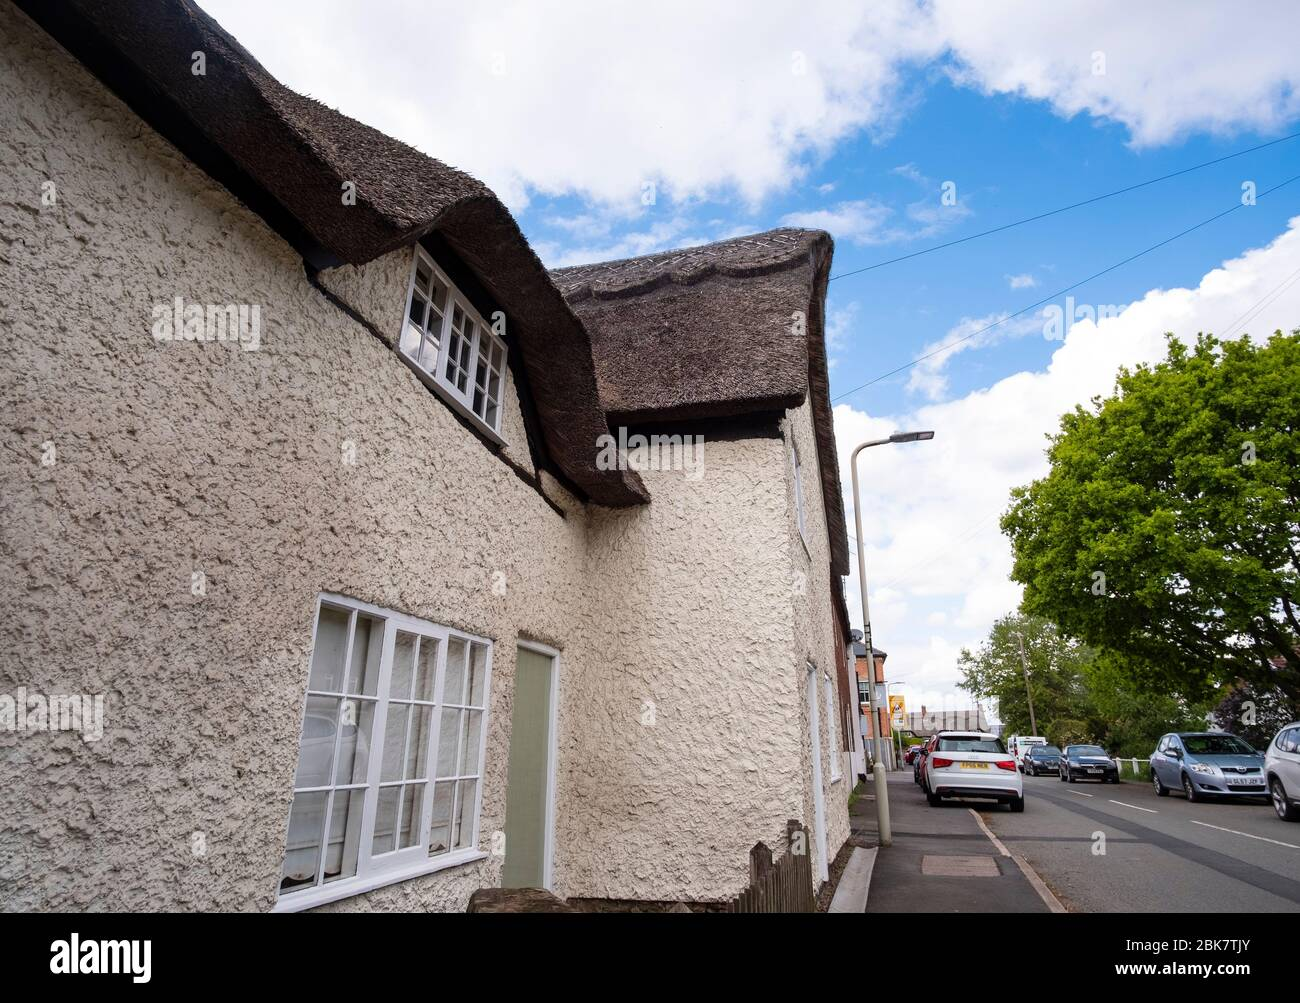 Example of thatched roof houses in the village of Hemington, Leicestershire, UK Stock Photo